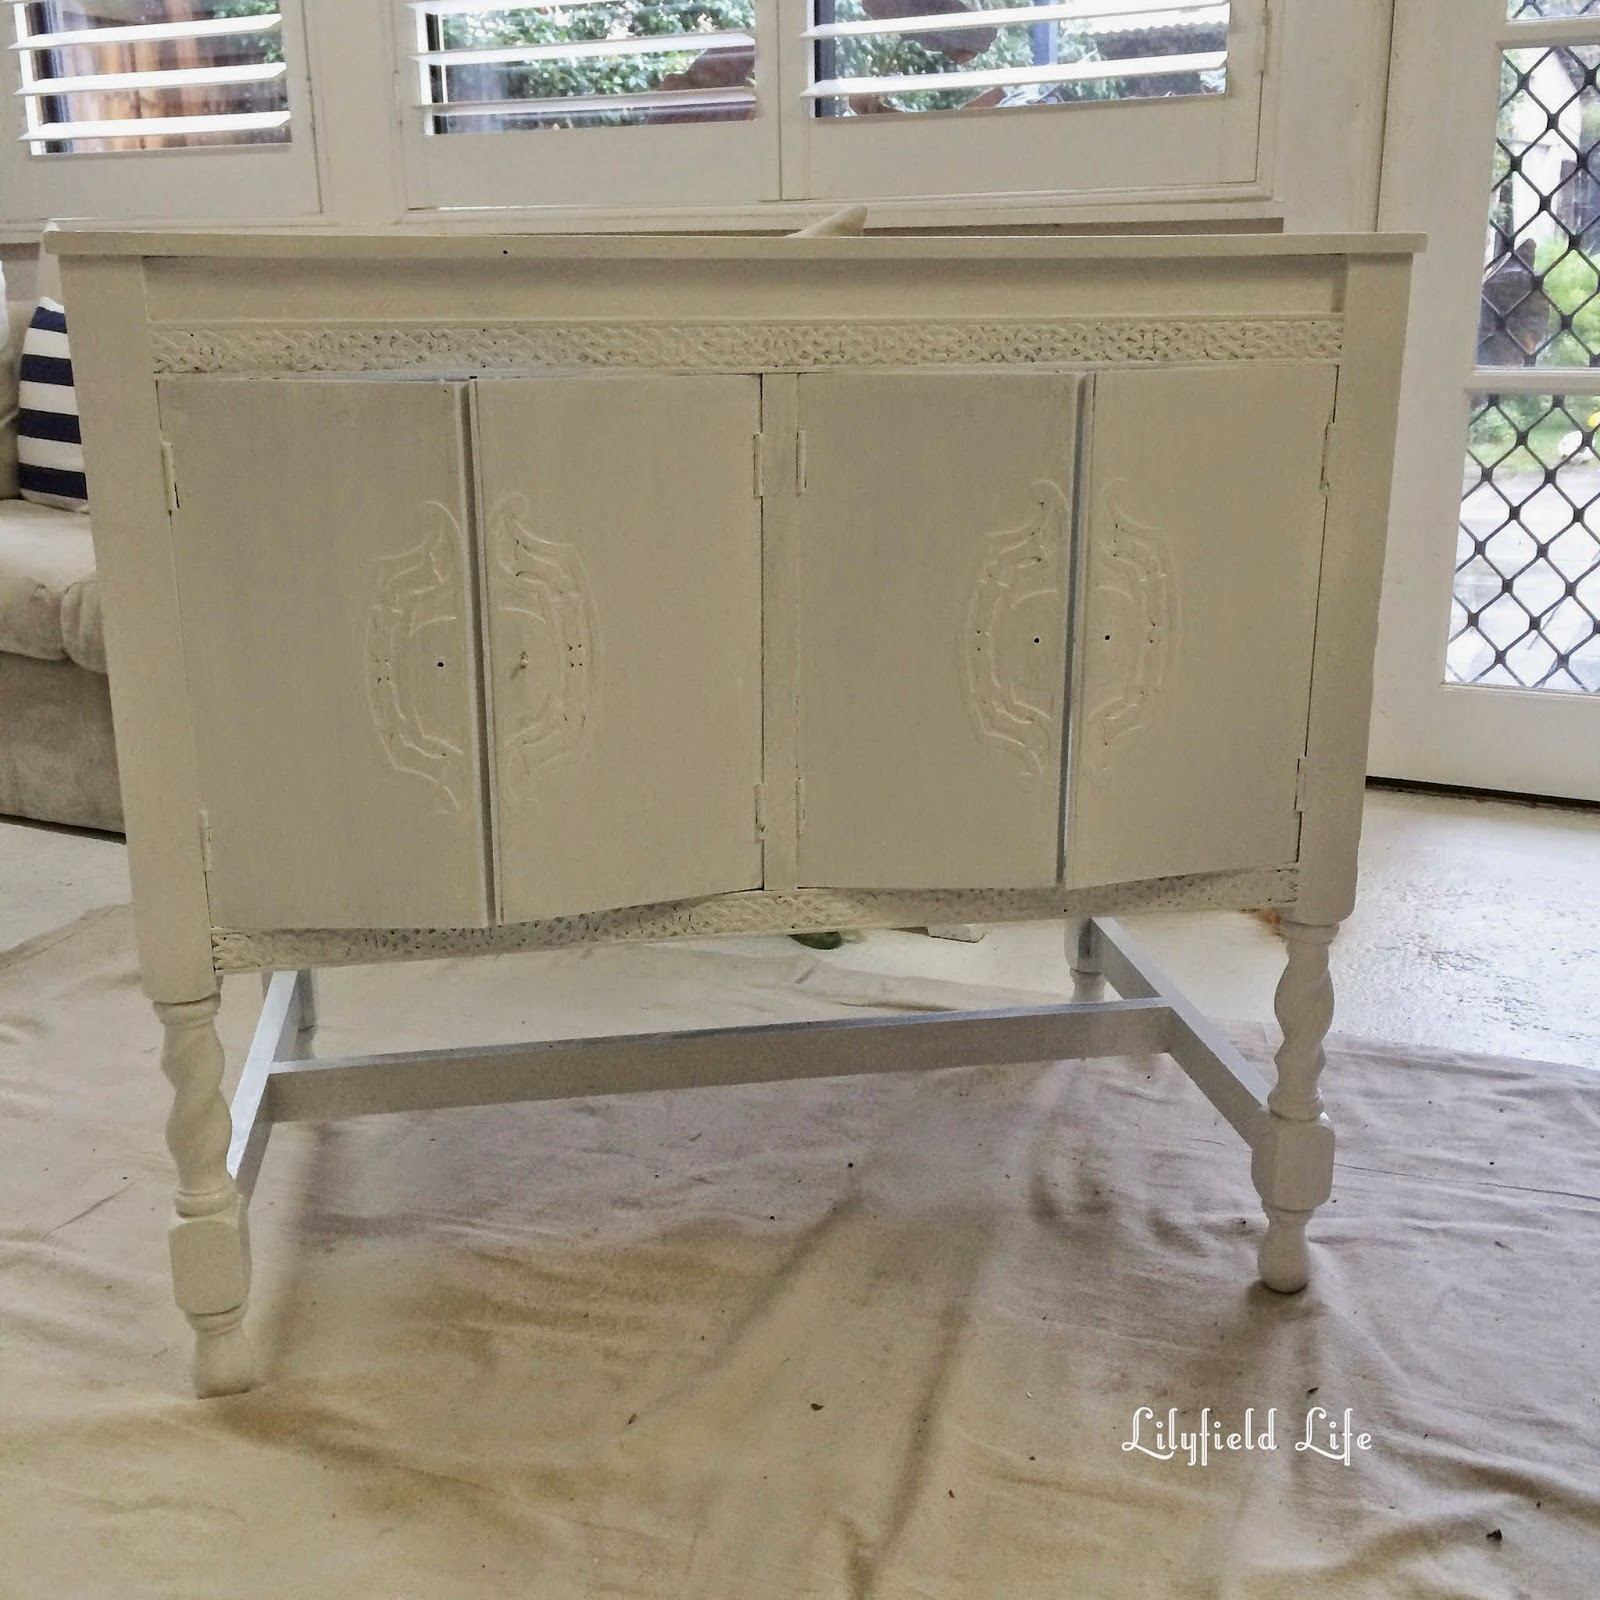 Vintage Furniture Sydney Lilyfield Life Vintage Cabinet Turned Bathroom Vanity And